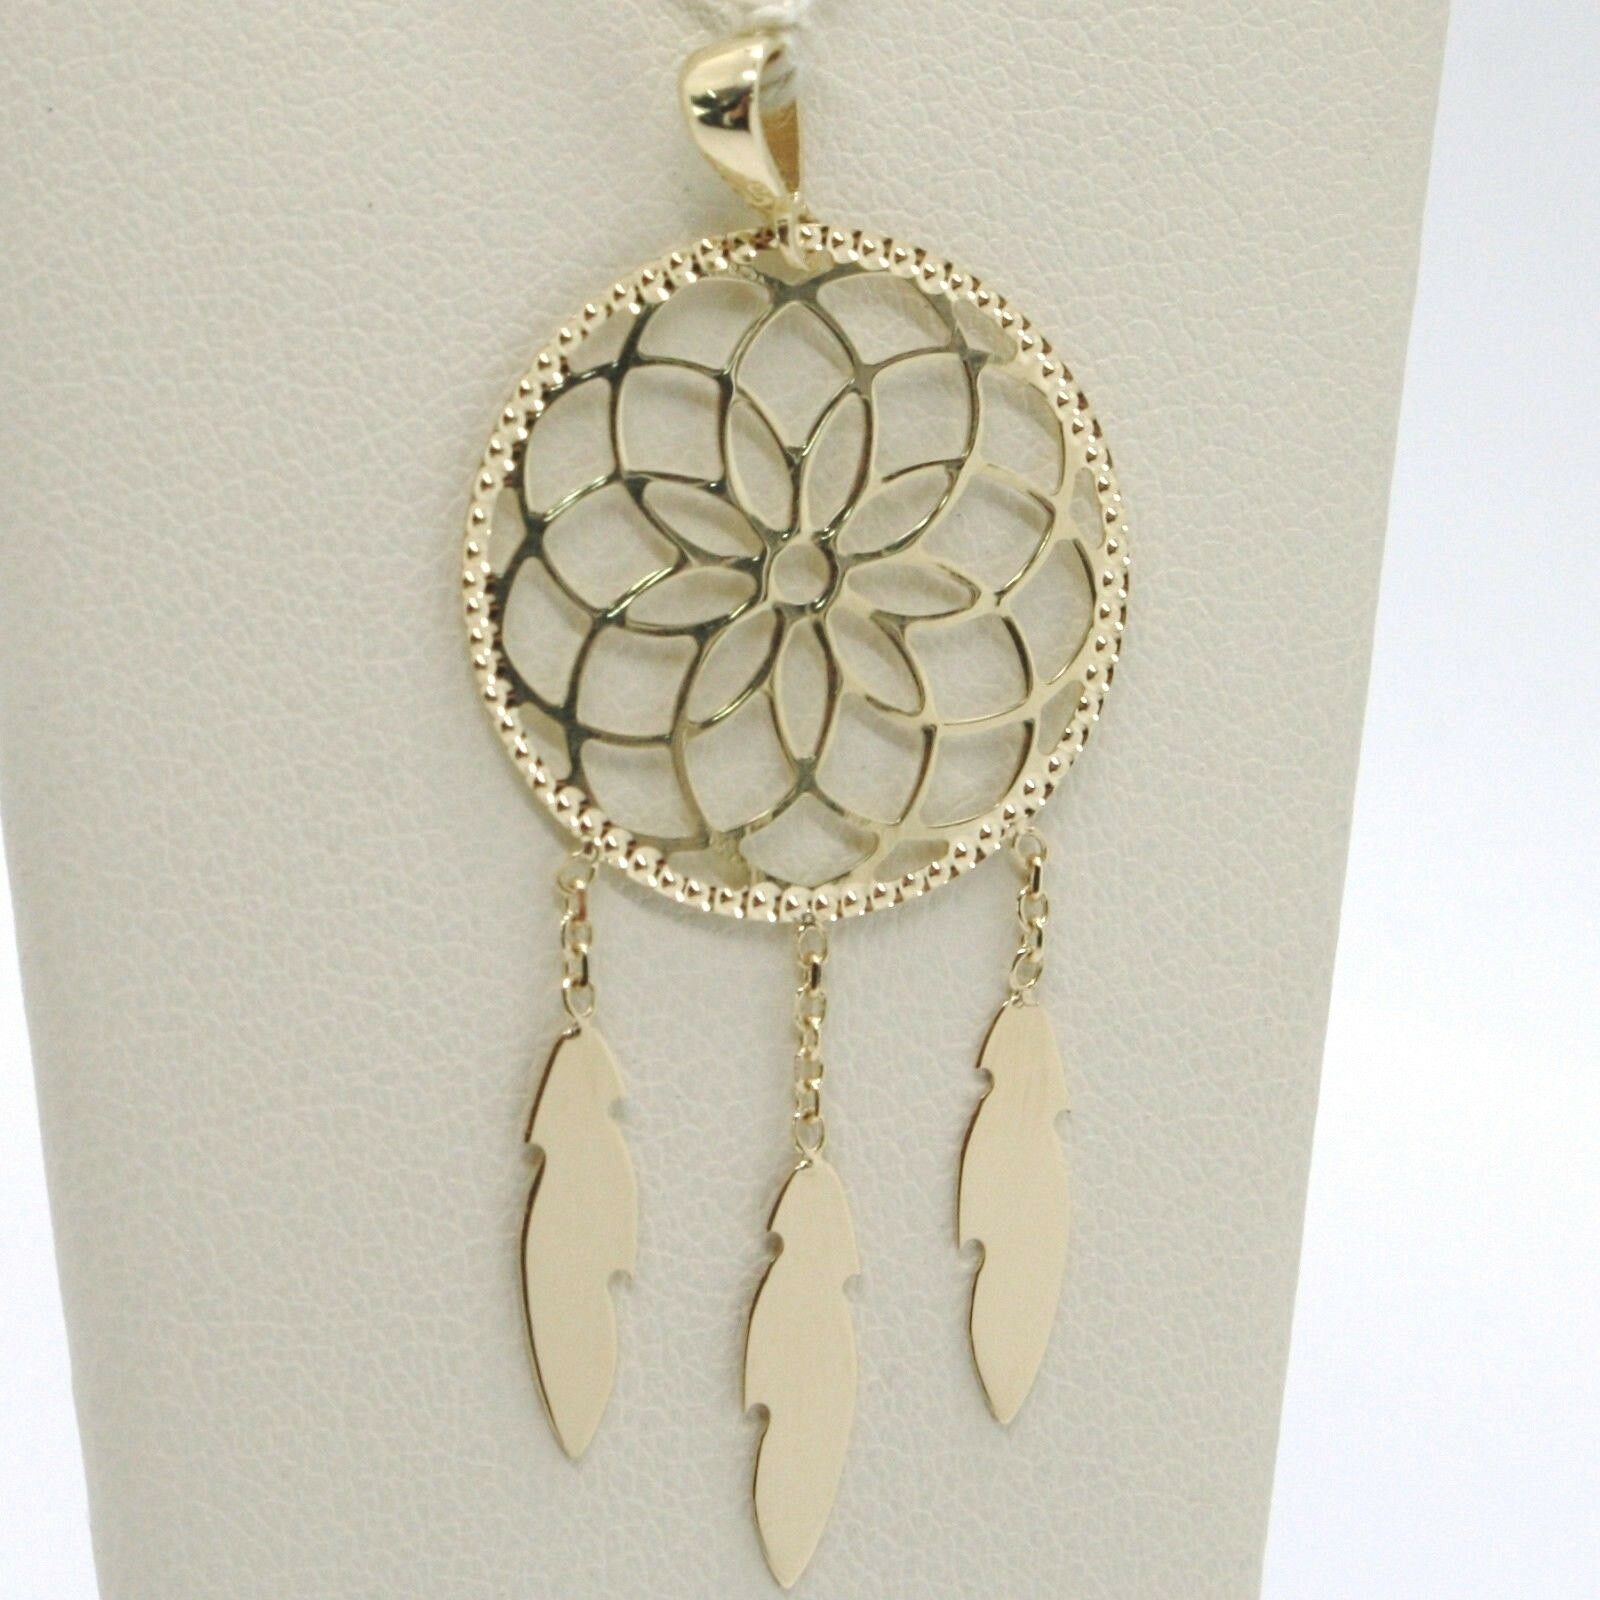 18K YELLOW GOLD DREAMCATCHER PENDANT, FEATHER, MADE IN ITALY, 1.8 INCHES, 45 MM